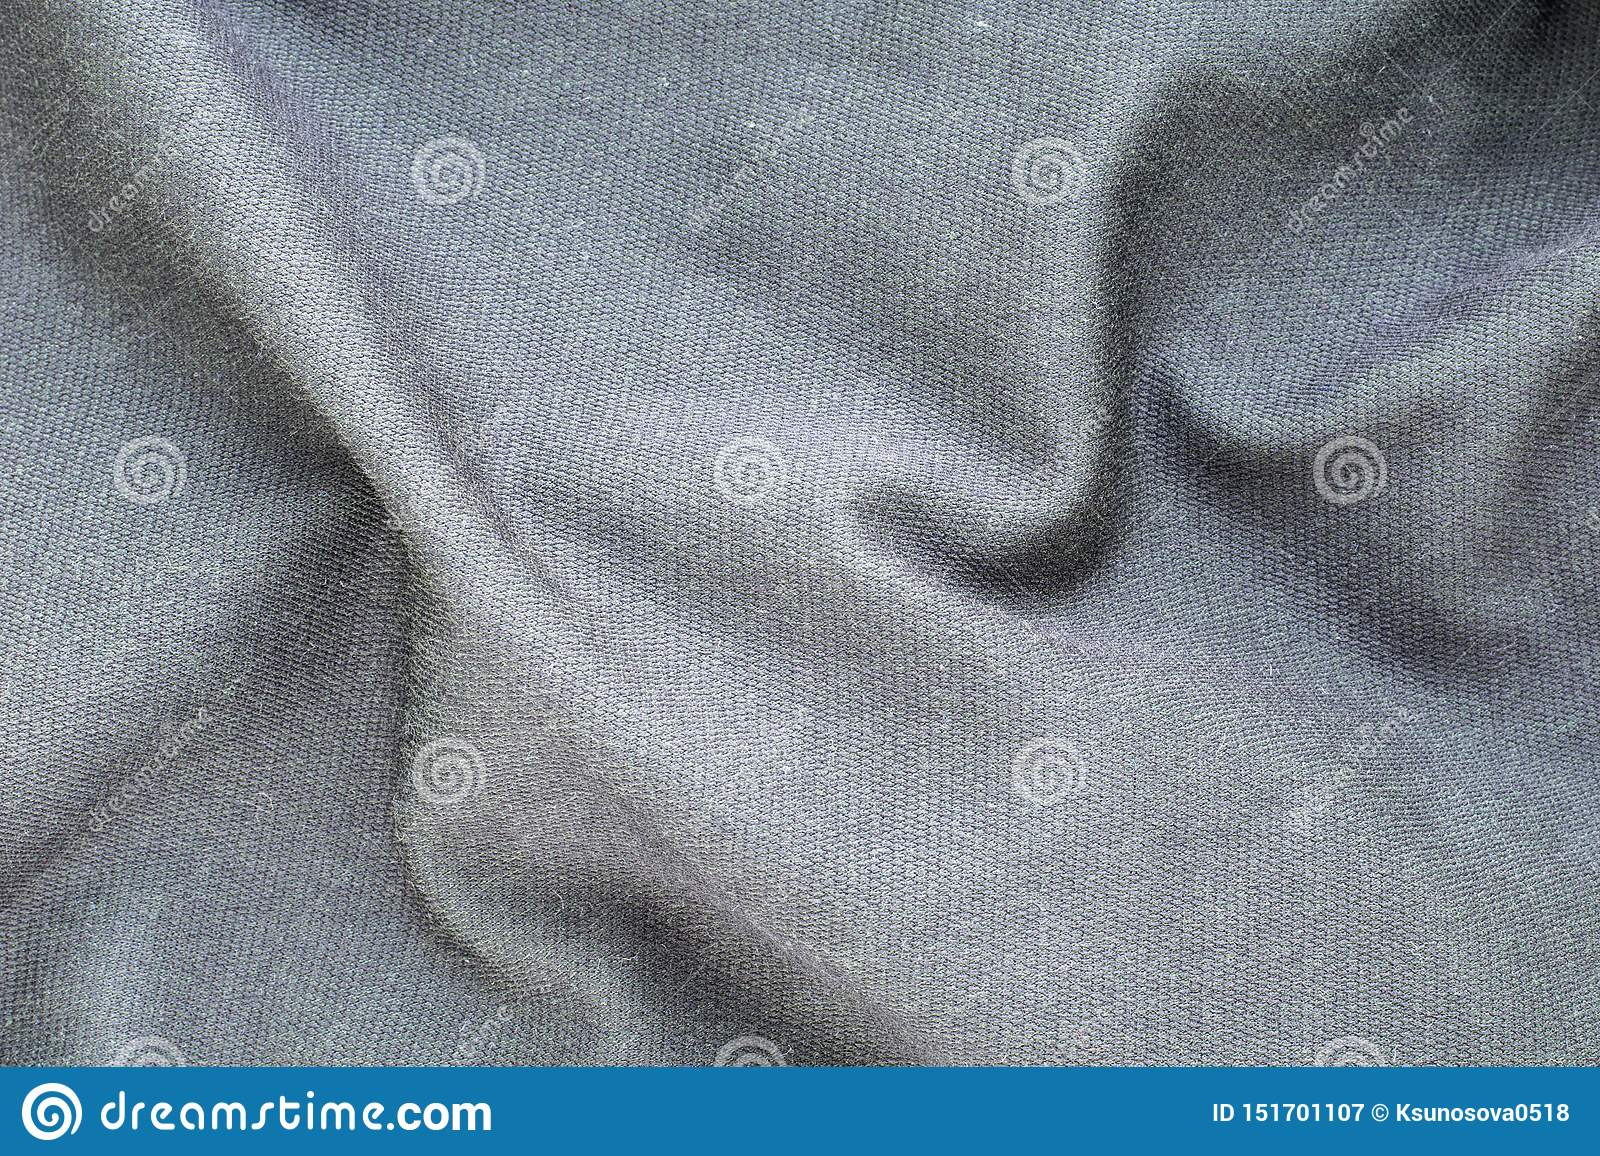 The background texture is a gray soft wavy fabric, top view, close-up.